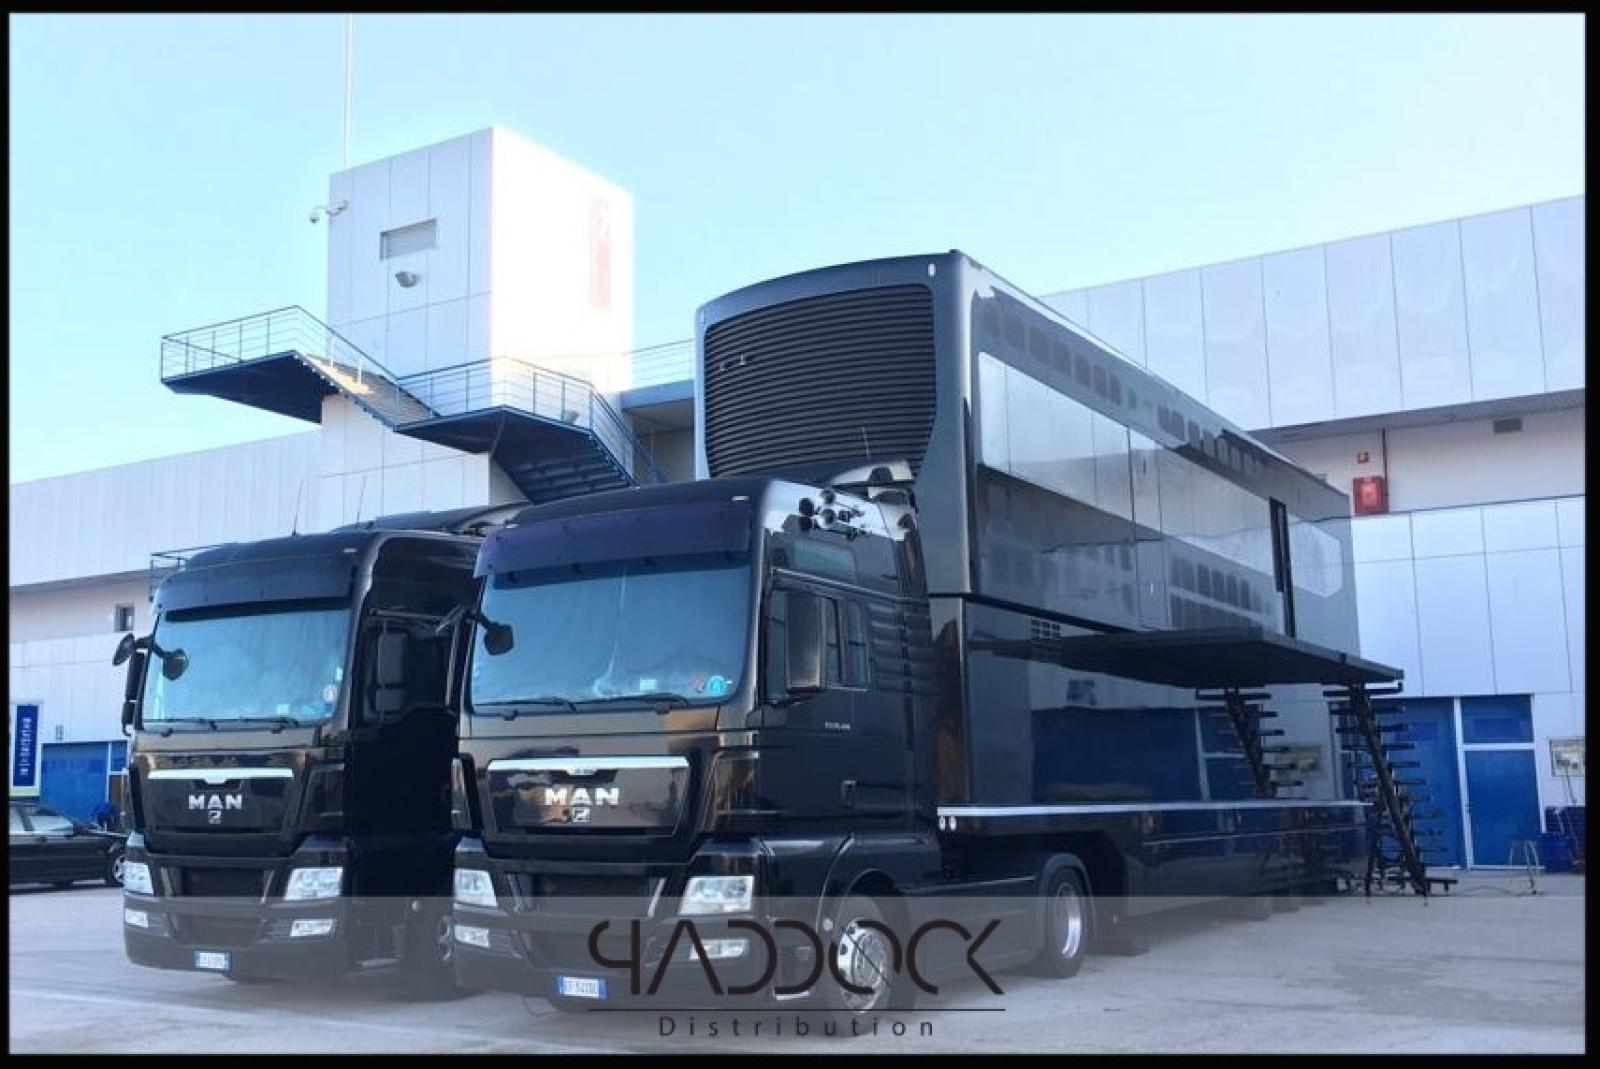 USED TRAILER WHEELBASE ENGINEERING BY PADDOCK DISTRIBUTION - 1